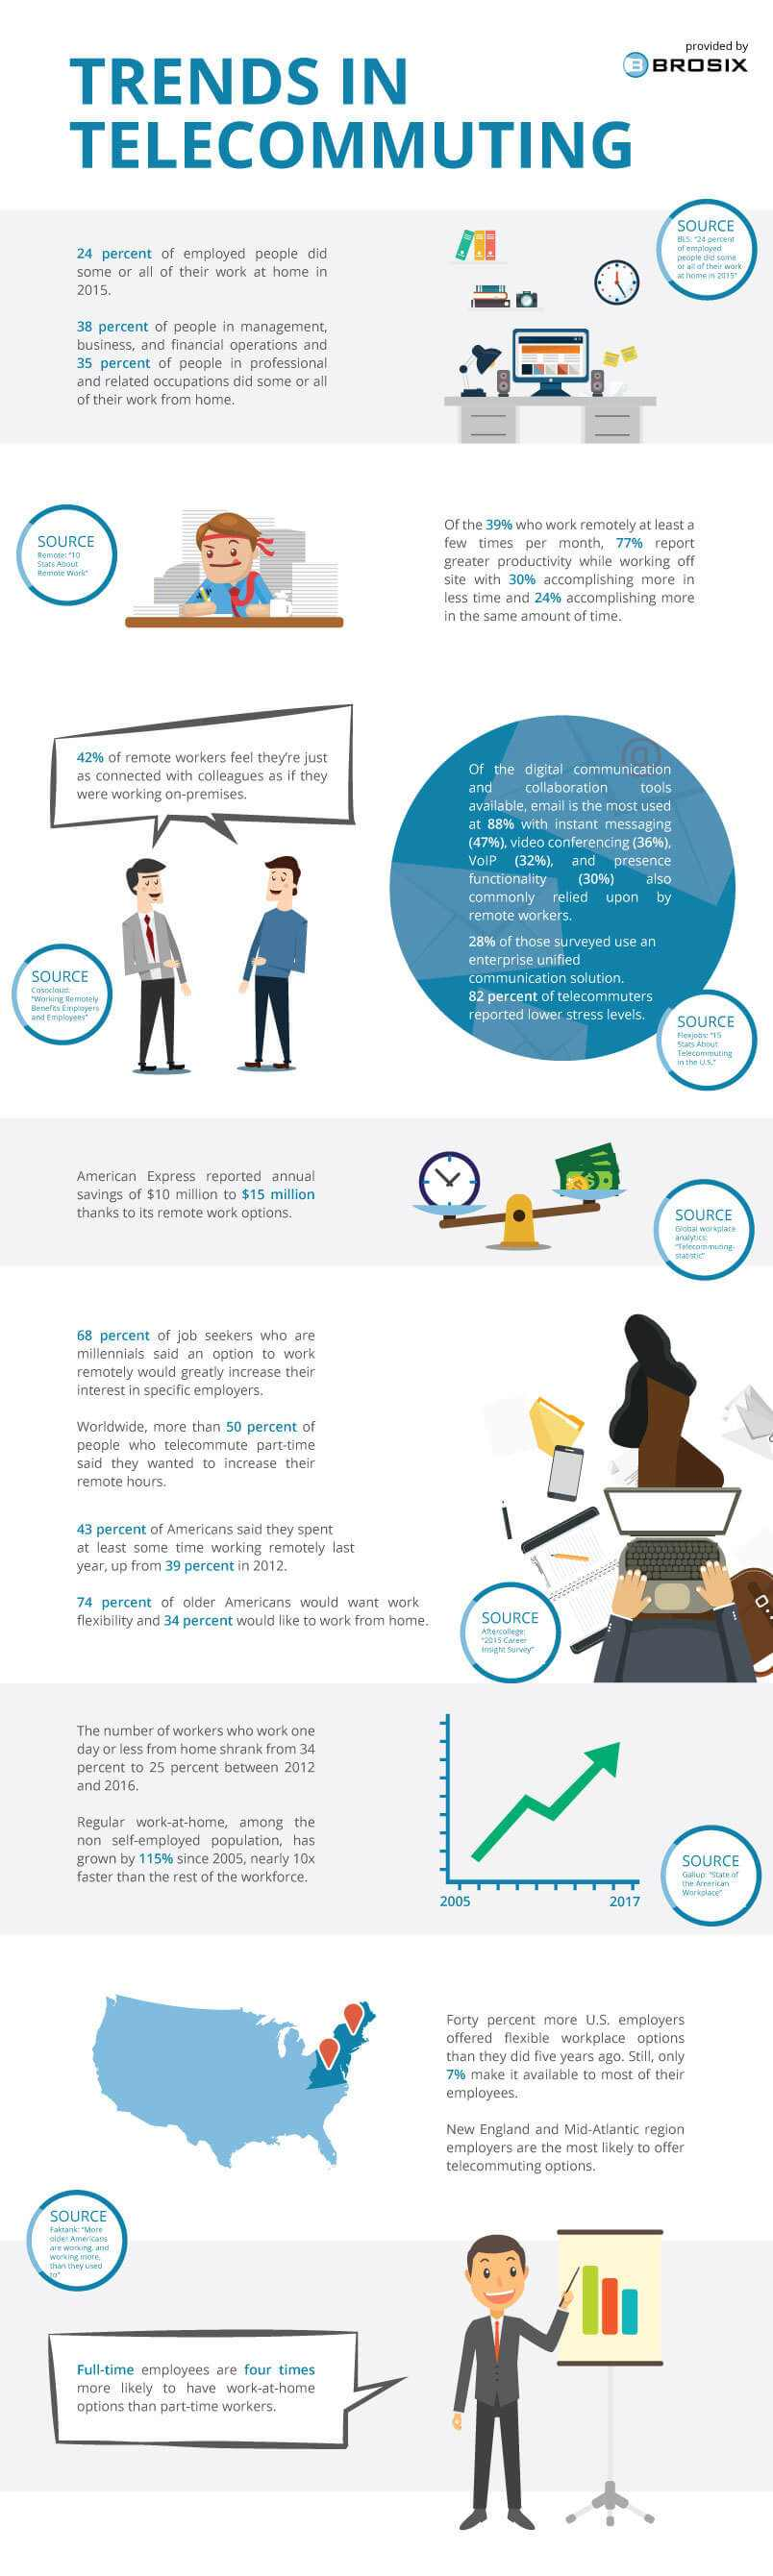 Trends in Telecommuting